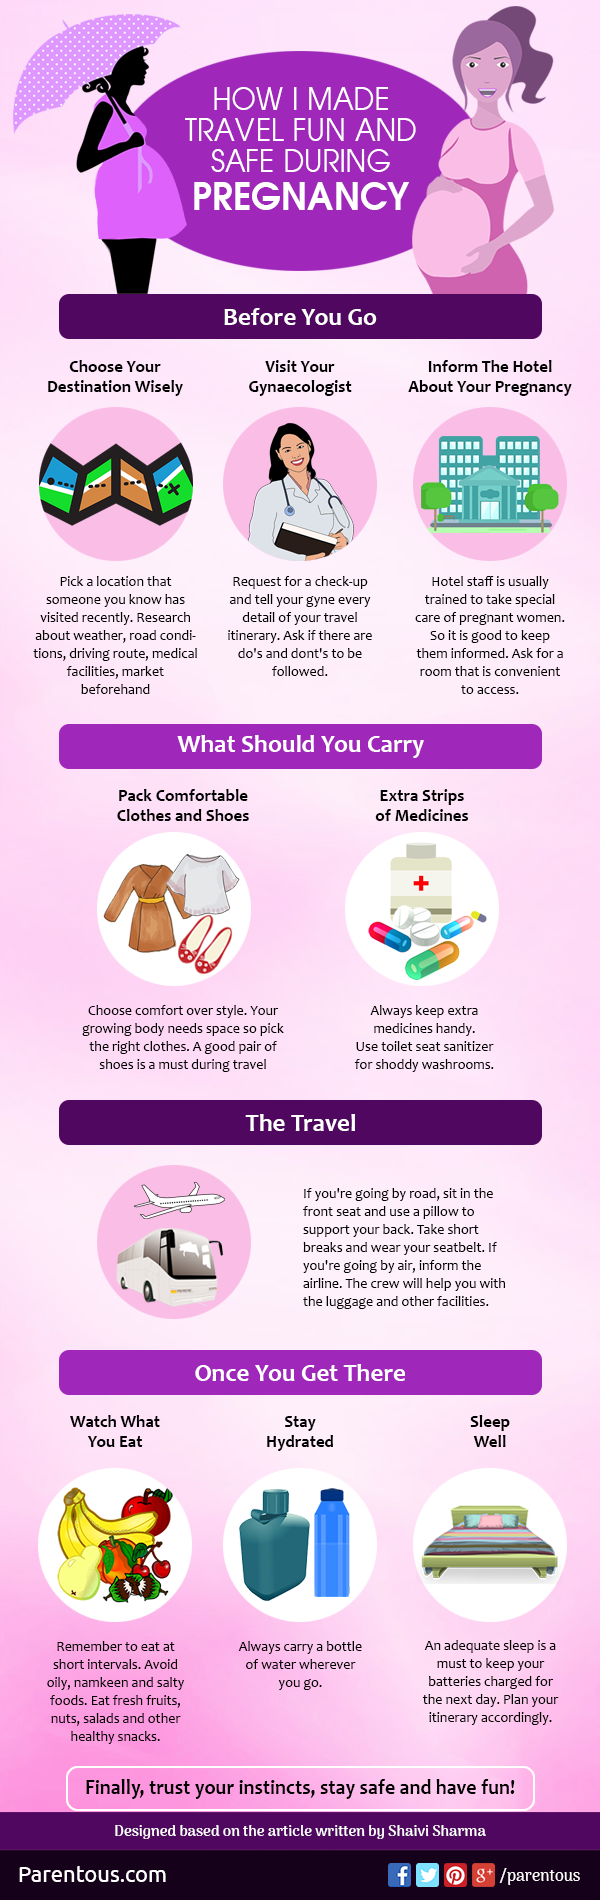 Safe Travel During Pregnancy - Infographic